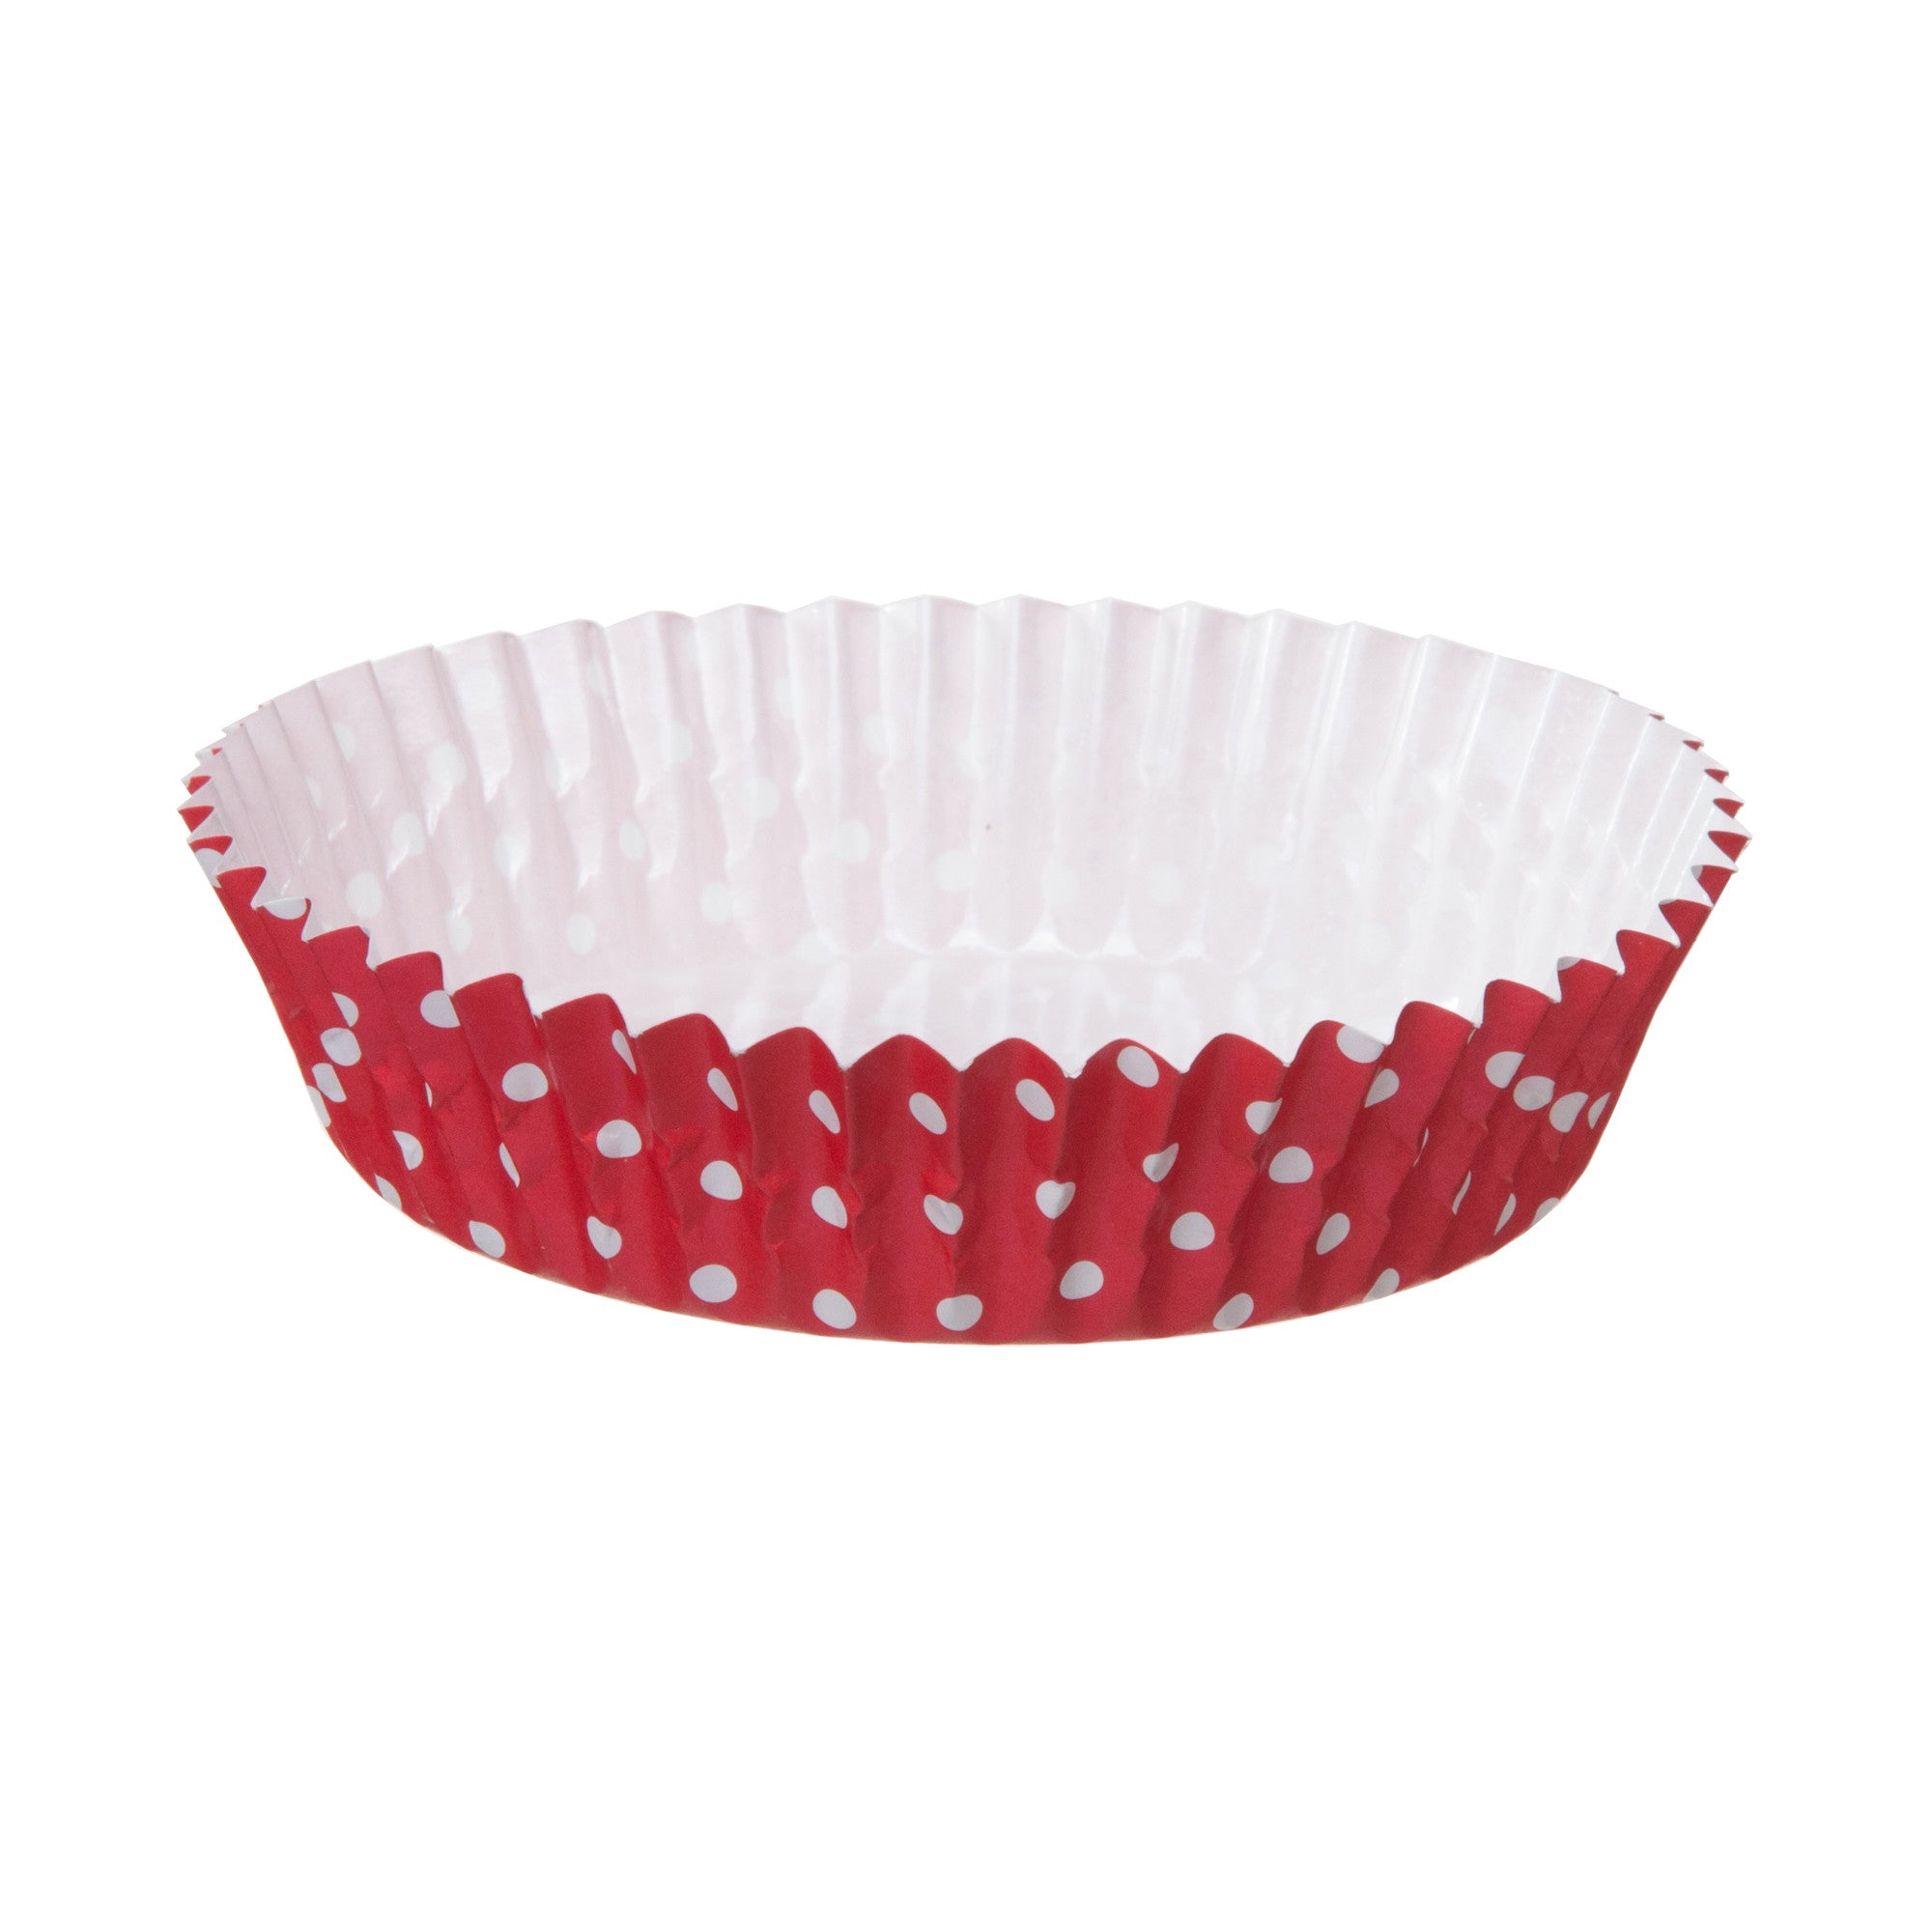 "Ruffled Baking Cups, 4"" Ruffled Baking Cup, Red and White Dot (Set of 300) - Welcome Home Brands"